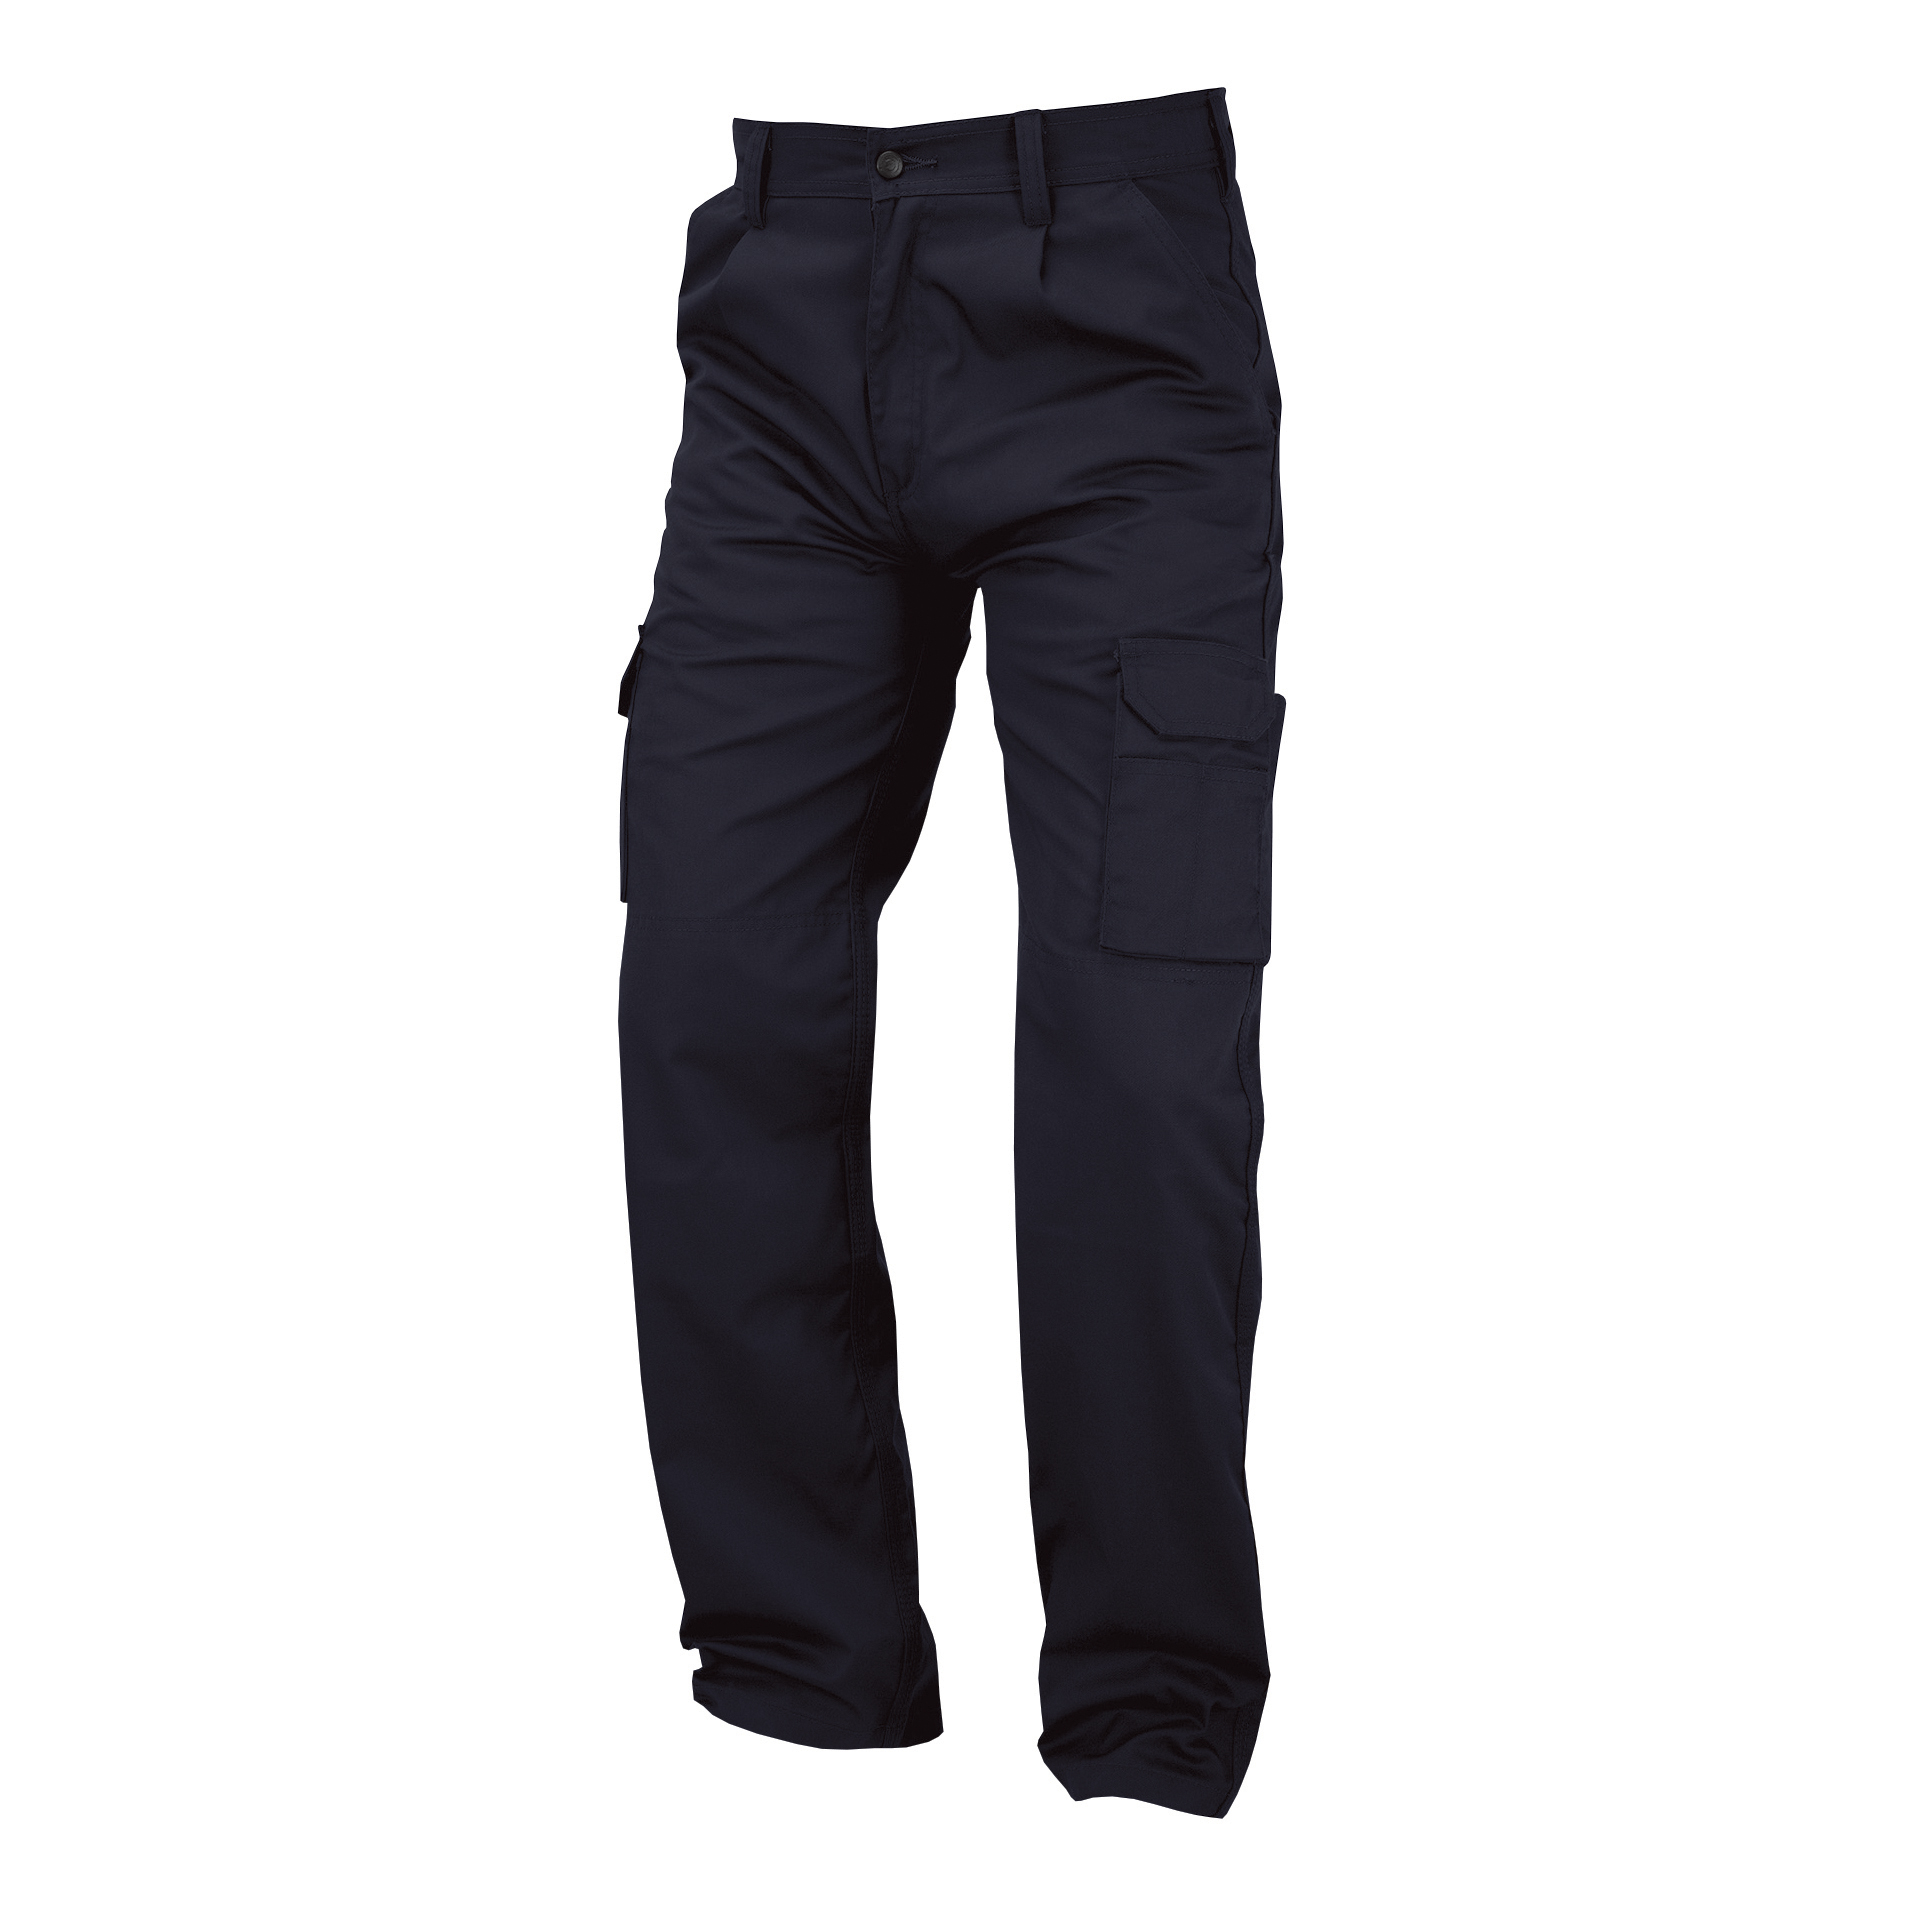 Combat / Cargo Combat Trousers Polycotton with Pockets 40in Regular Navy Blue Ref PCTHWN40 *1-3 Days Lead Time*